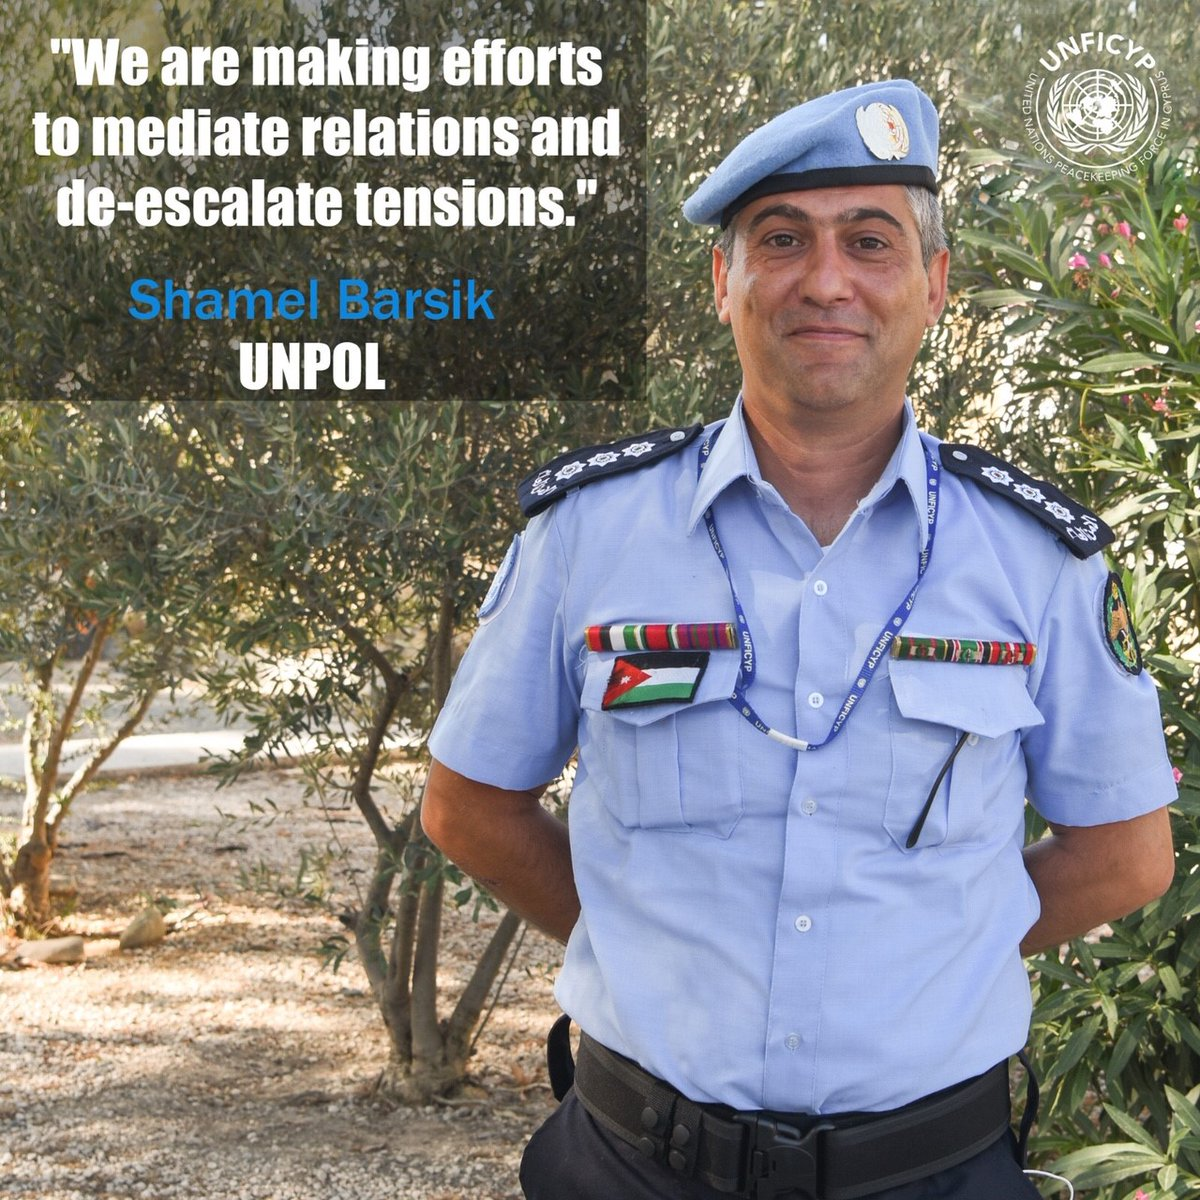 Meet Shamel, one of our @UNPOL officers from Jordan, who is working in Sector One and how his role is contributing to peace in #Cyprus. His full interview is on #BlueBeret magazine: https://t.co/7yLlCRungV #A4P #Serving4Peace https://t.co/Ur4K83ywih